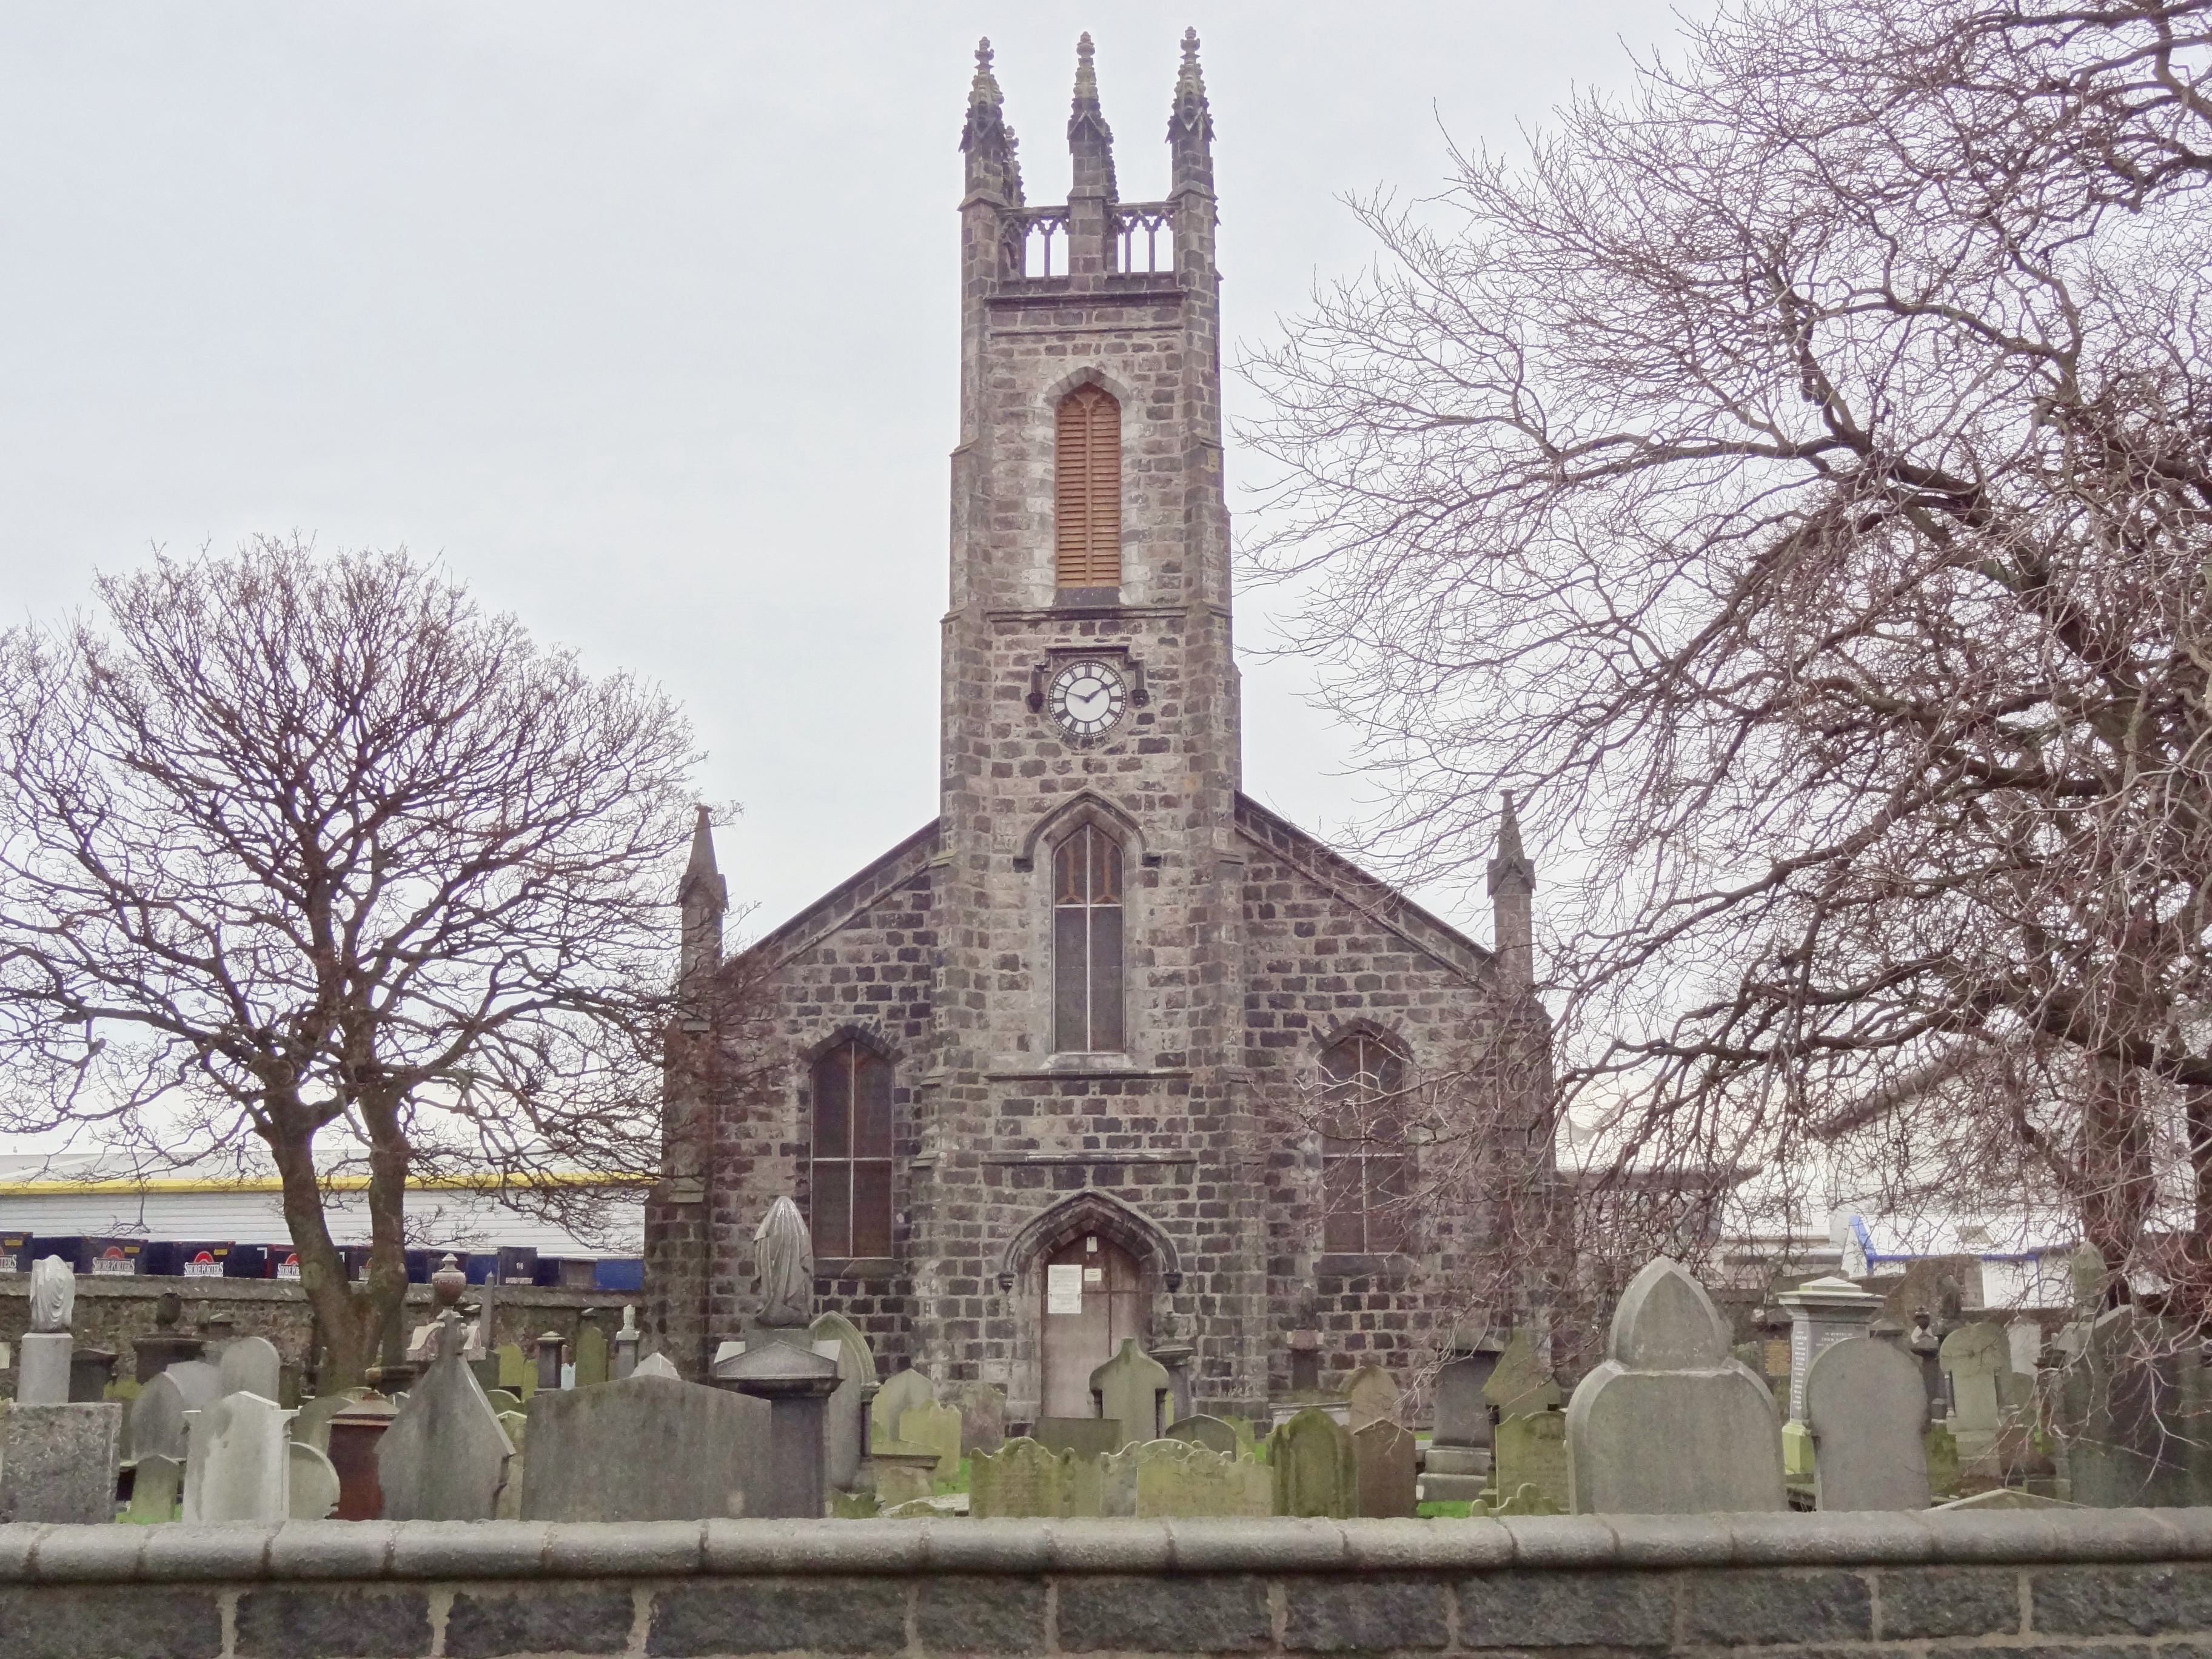 St. Nicholas Kirk Aberdeen and the Northeast, St Clement's cemetery: Hark! from the tombs a doleful sound ...